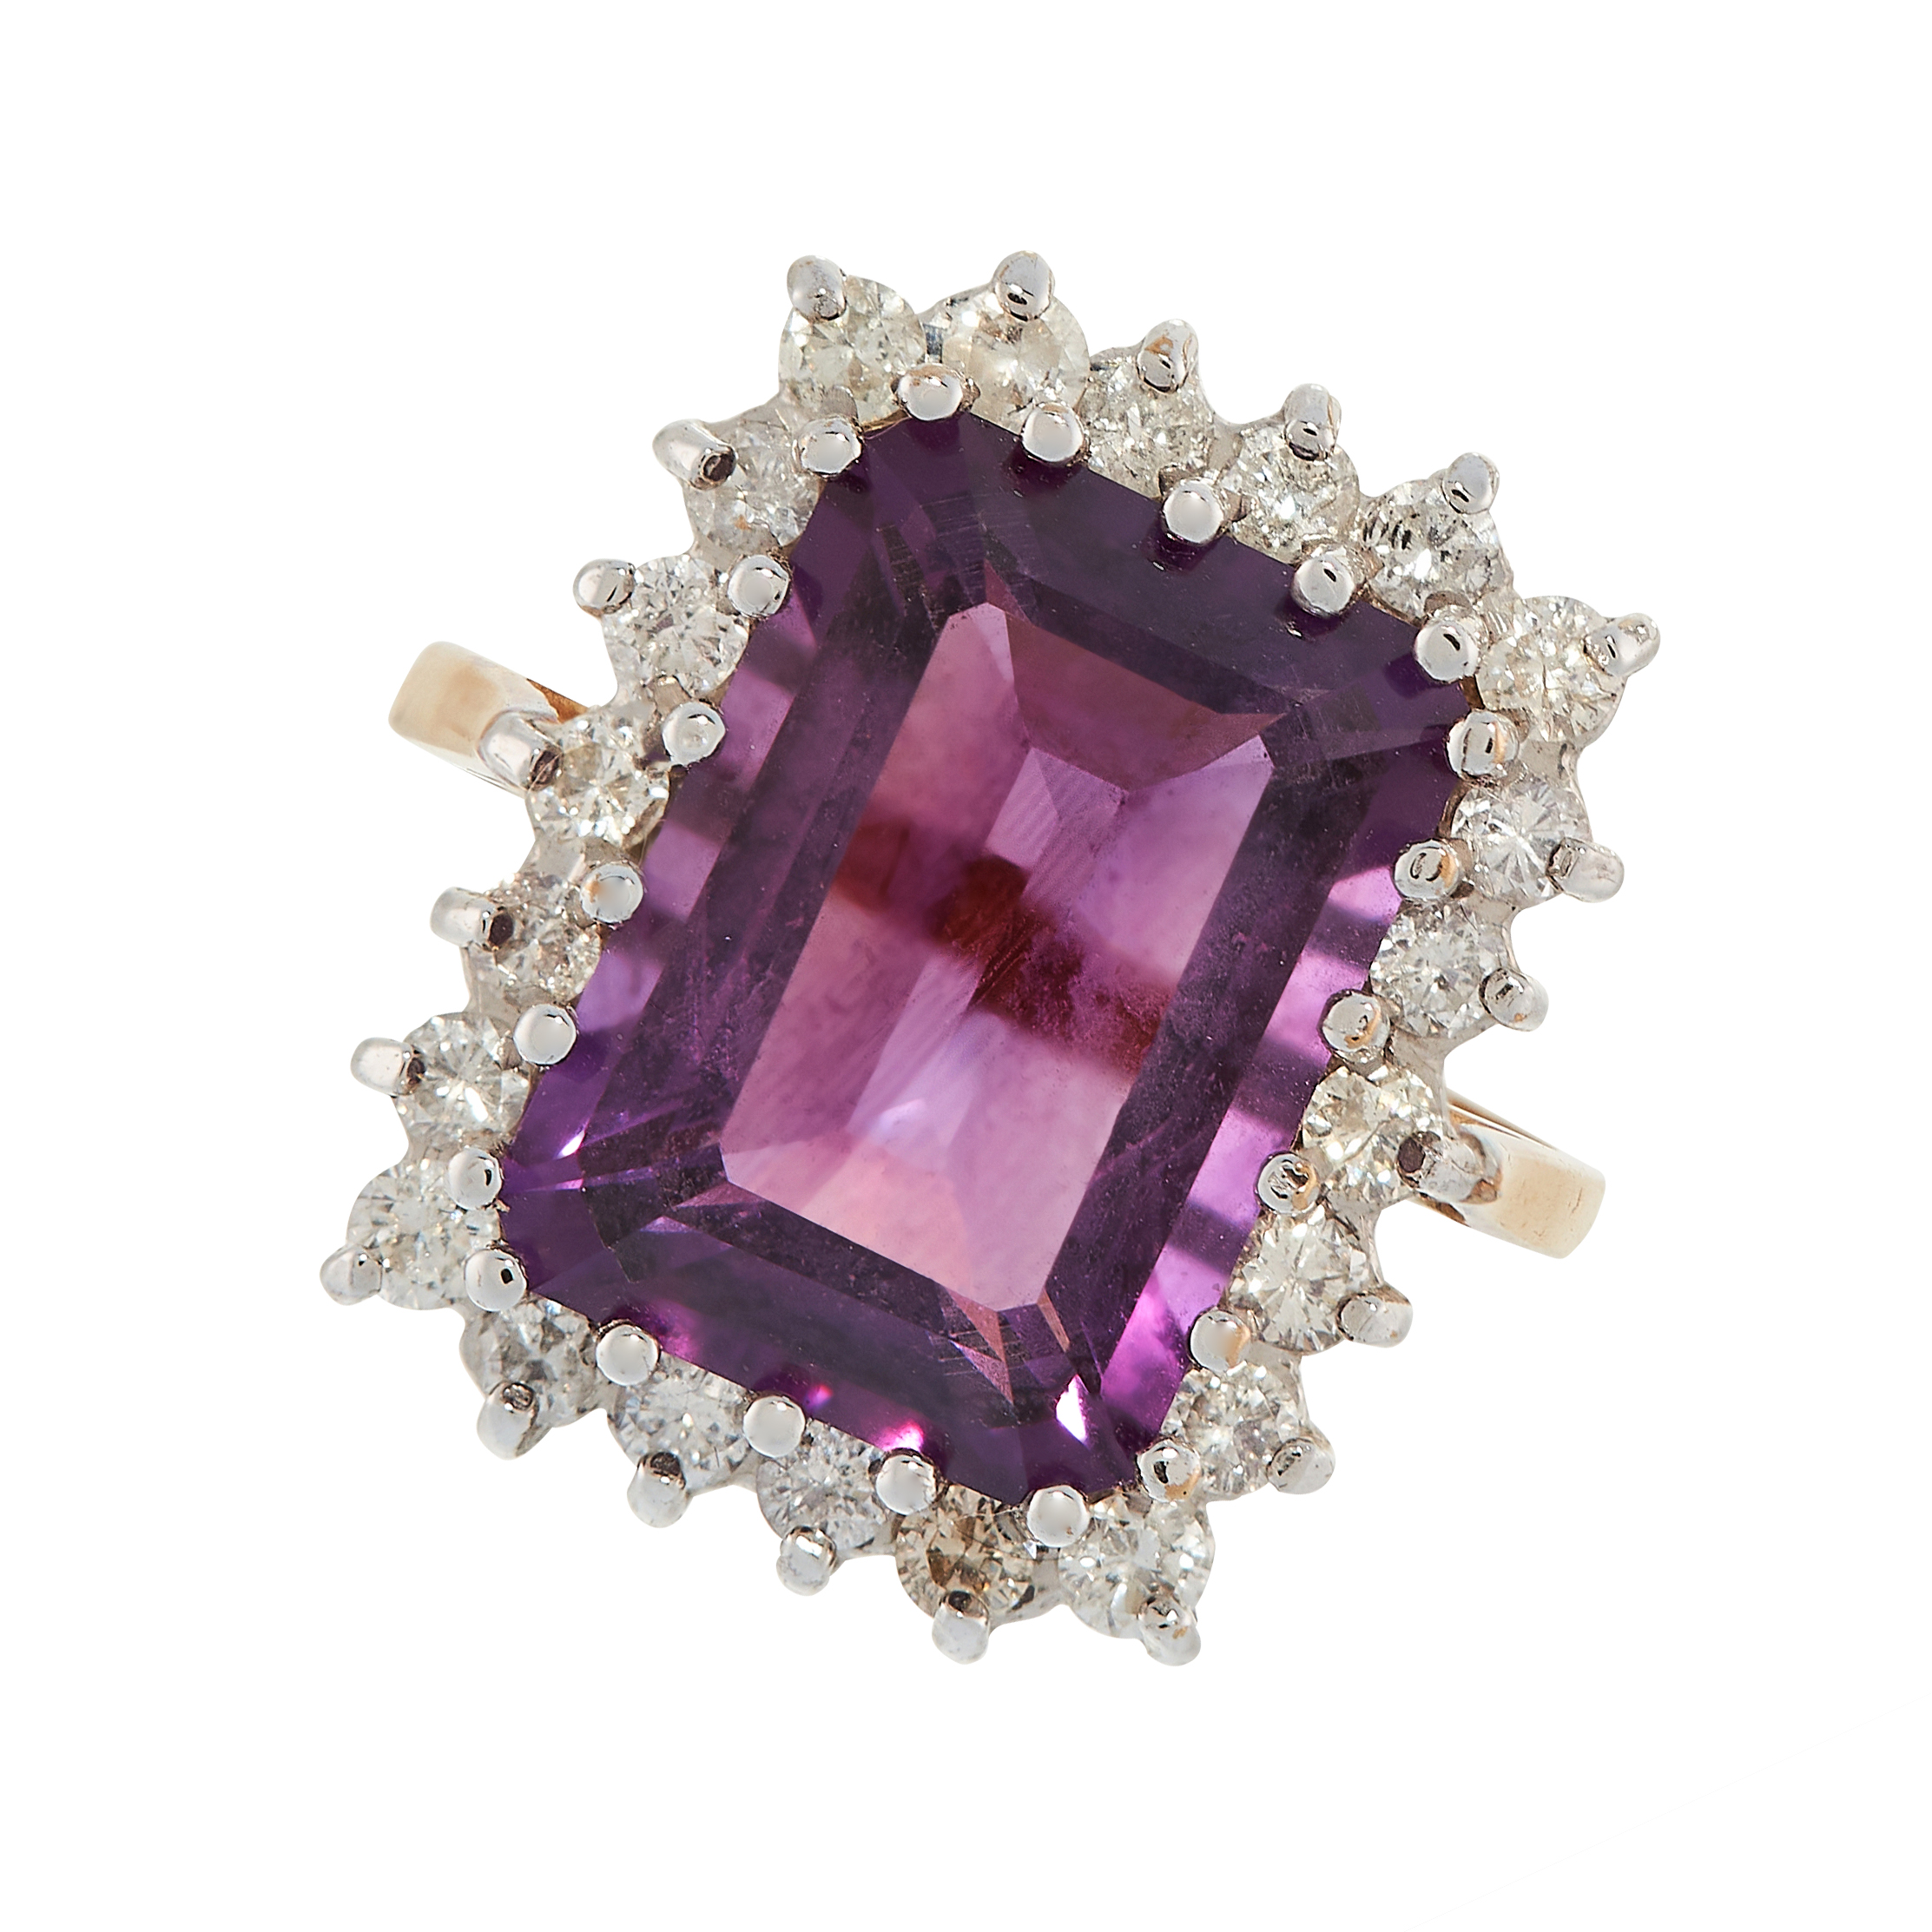 AMETHYST AND DIAMOND RING in yellow gold, comprising of an emerald cut amethyst of 6.82 carats in